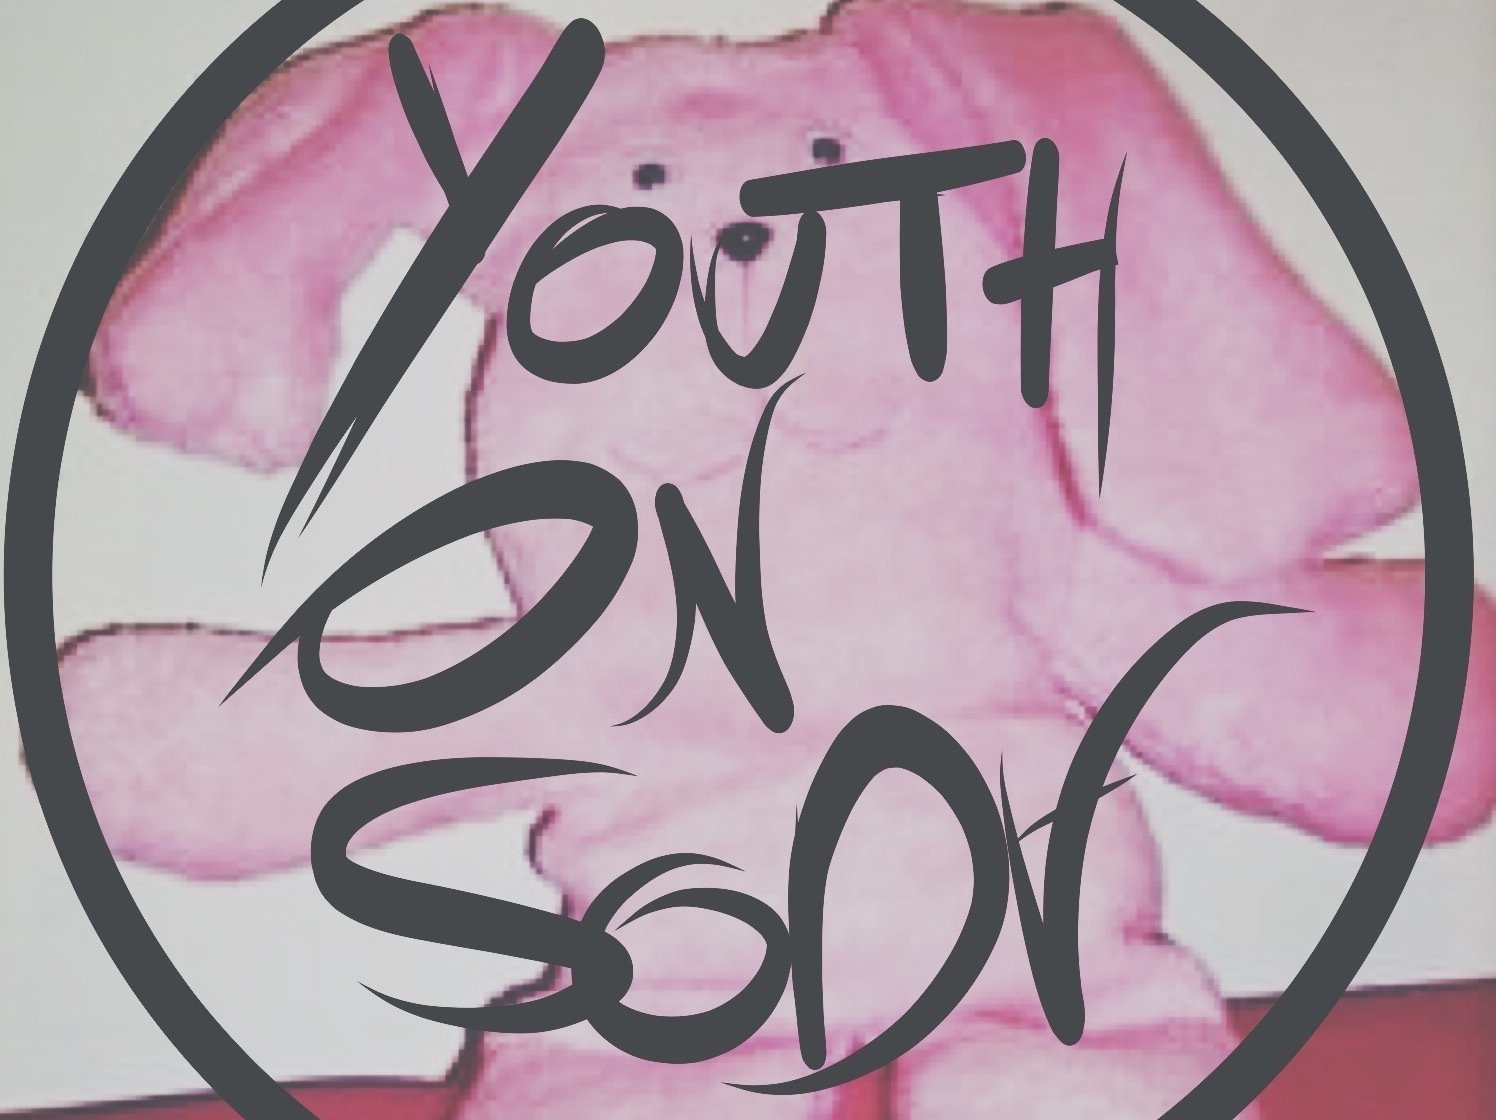 Image for YOUTH ON SODA